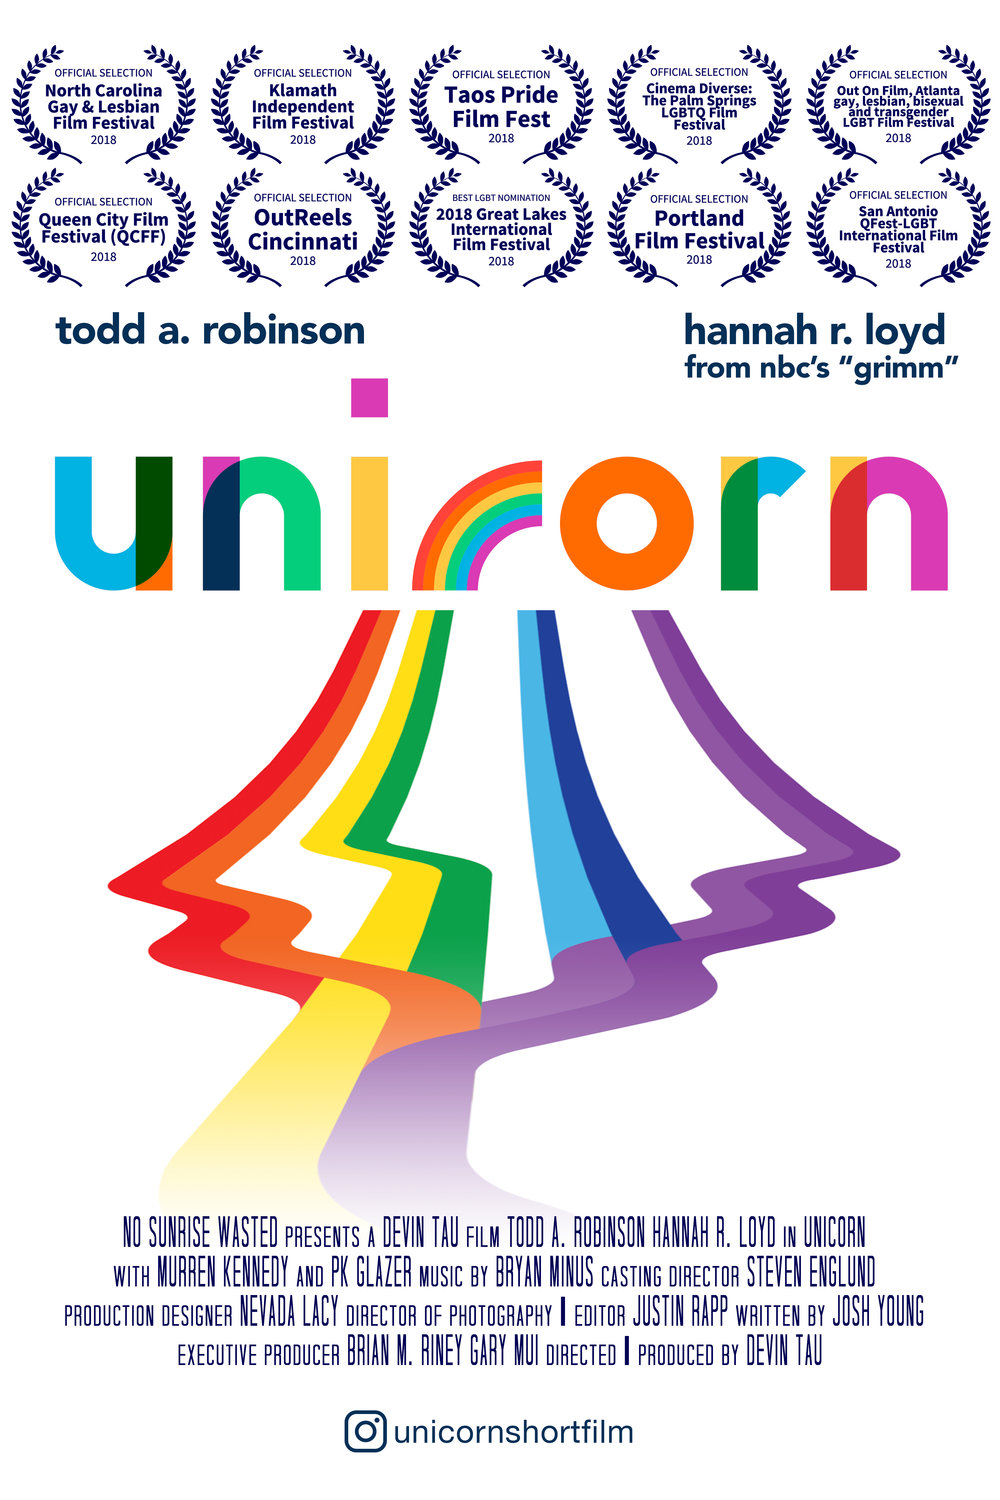 Poster for the Unicorn